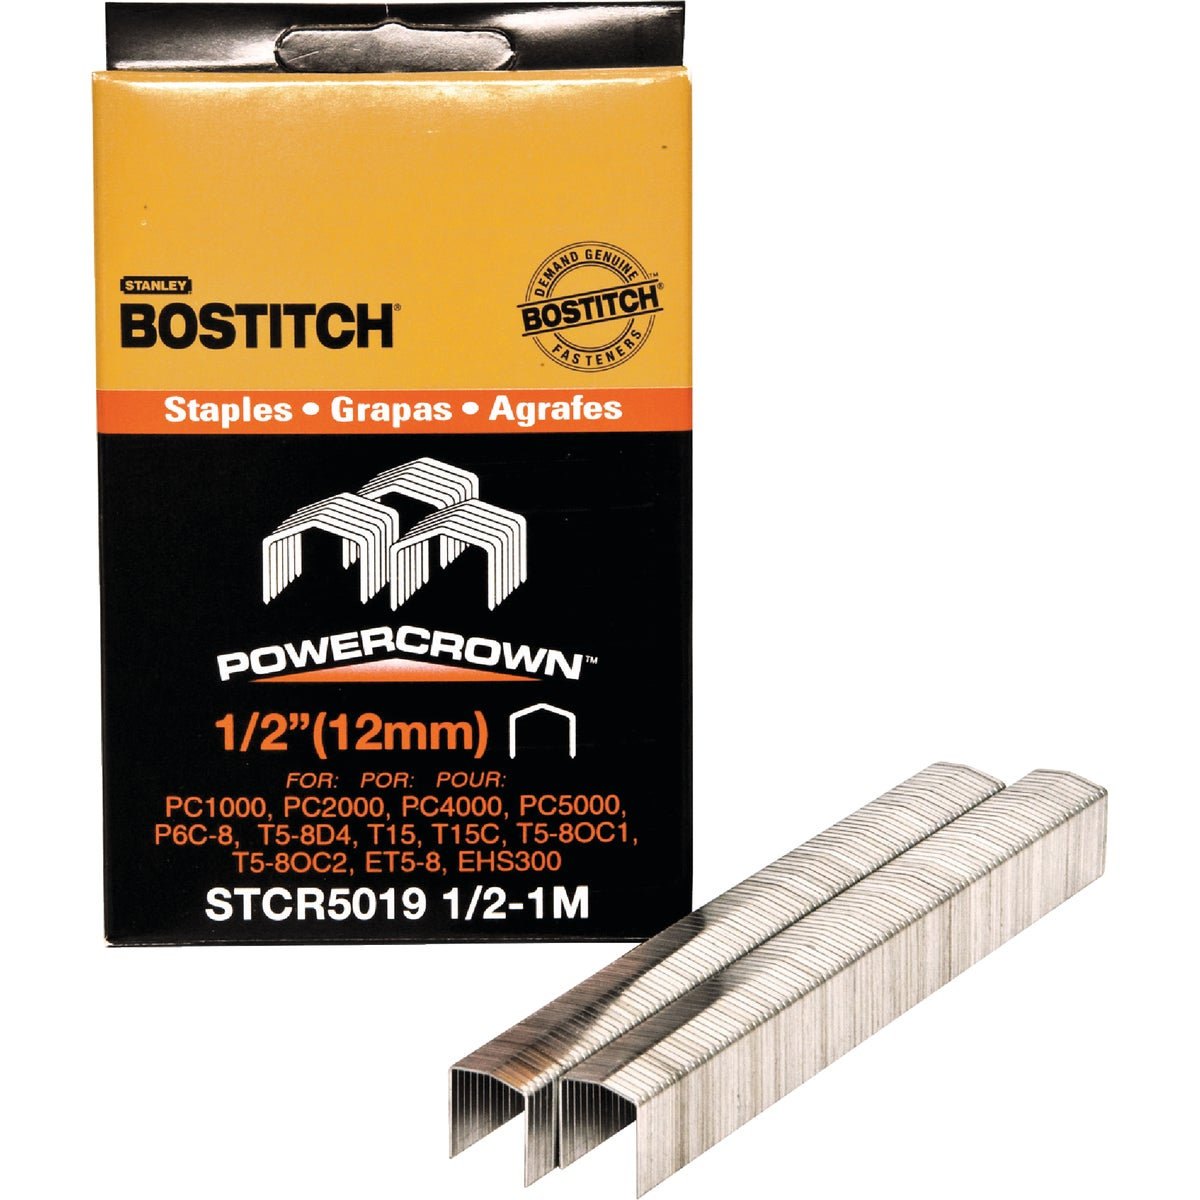 "1/2"" STAPLE - STCR50191/2-1M by Stanley Bostitch"